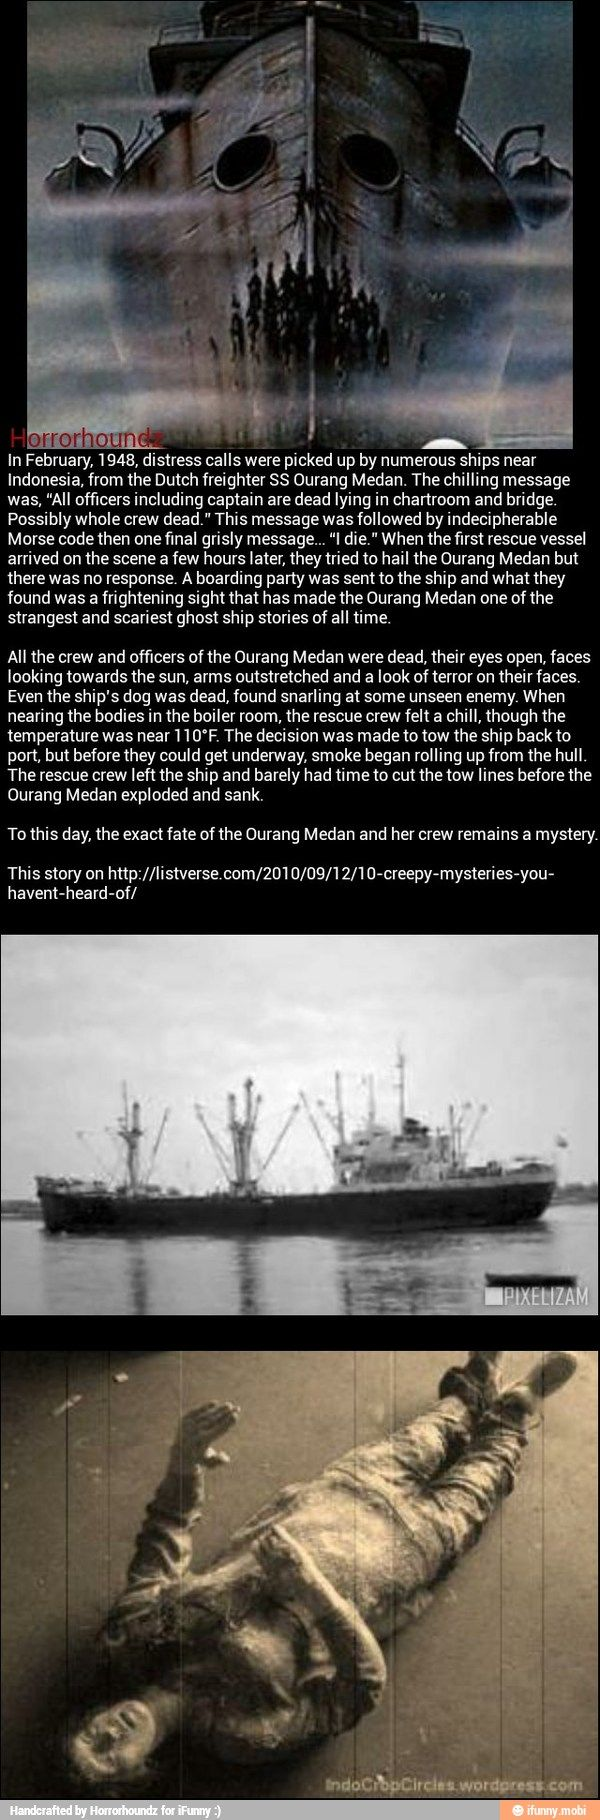 To this day the fate of the Dutch freighter SS Ourang Medan and her crew remains a bizarre  mystery.